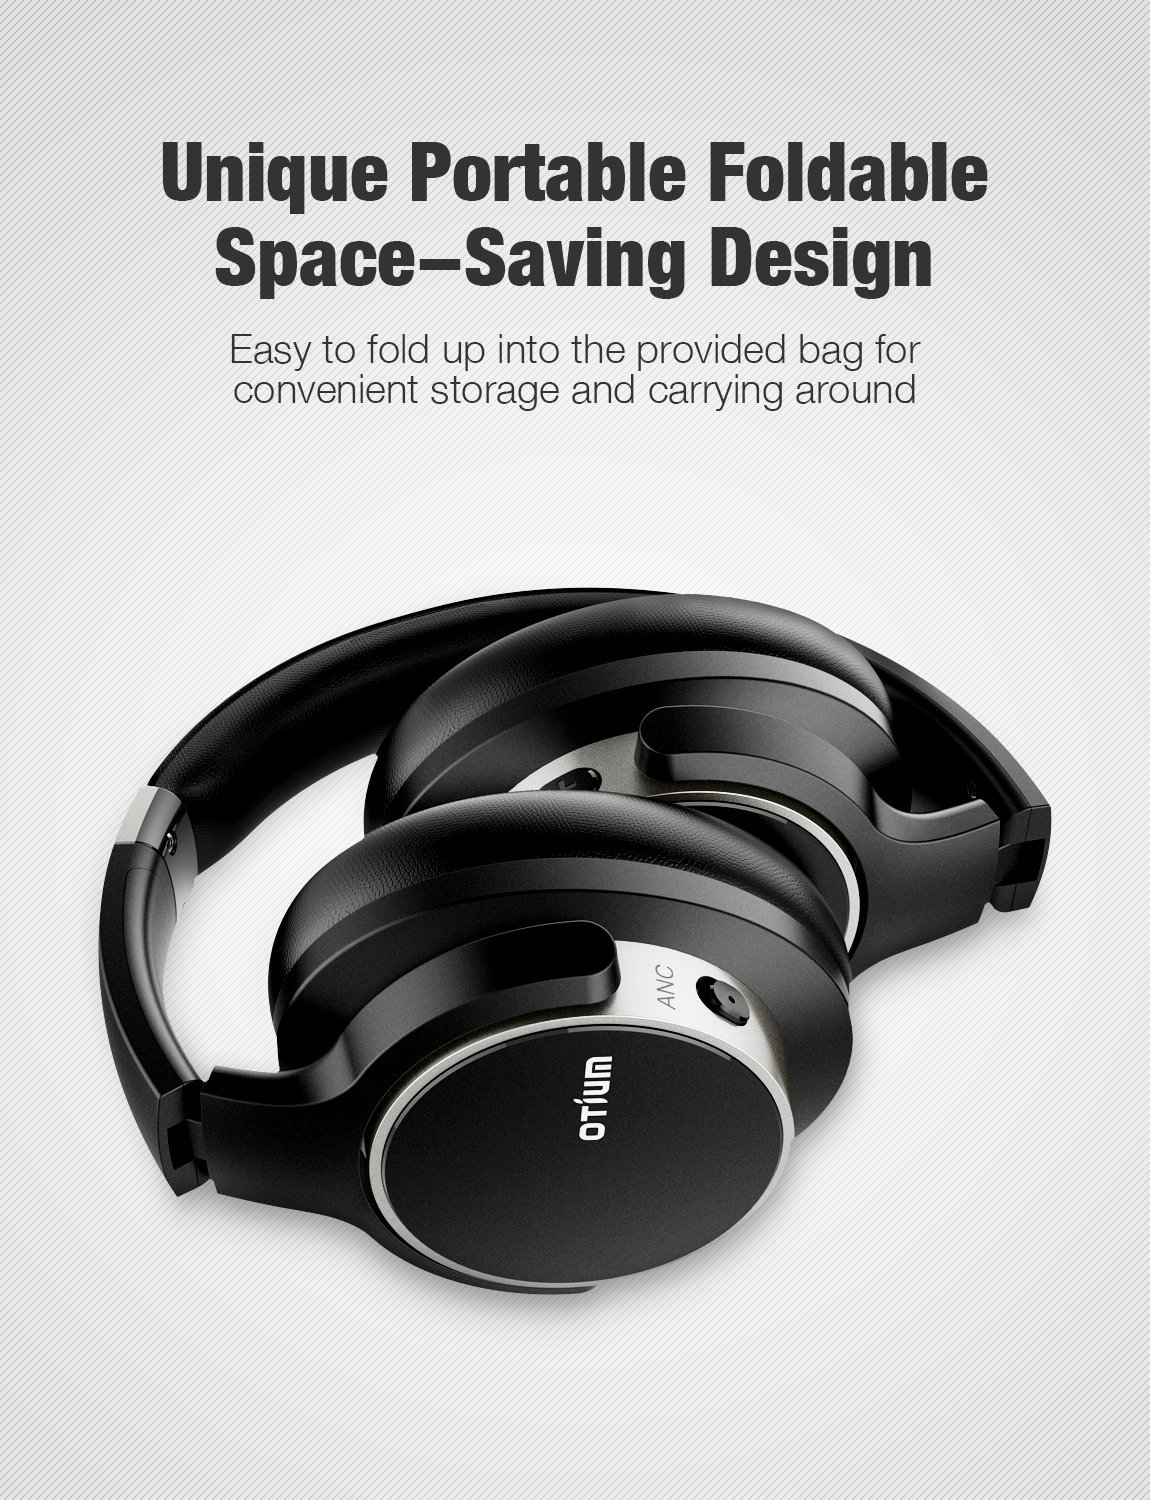 Otium Noise Cancelling Headphones, Wireless Headphones Over Ear Bluetooth Headphones with Mic Deep Bass, Foldable Comfortable Earpads 30H Playtime for Travel Work TV Computer Cellphone